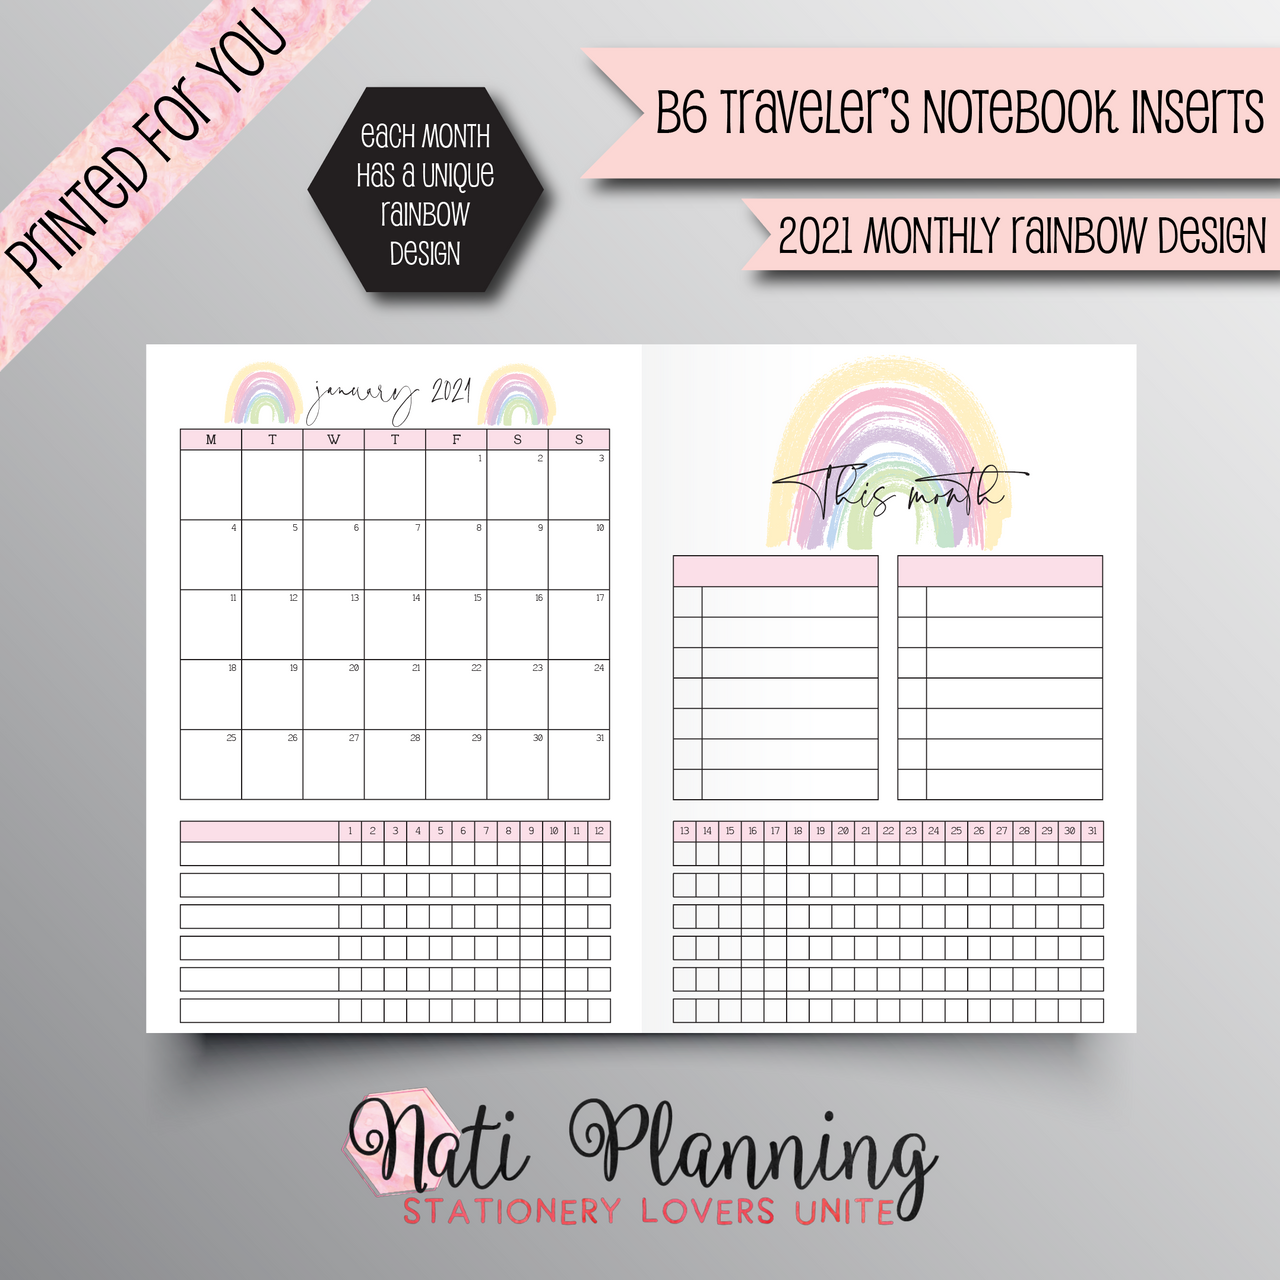 2021 MONTHLY RAINBOW DESIGN TN - B6 NO.5 SIZE INSERT